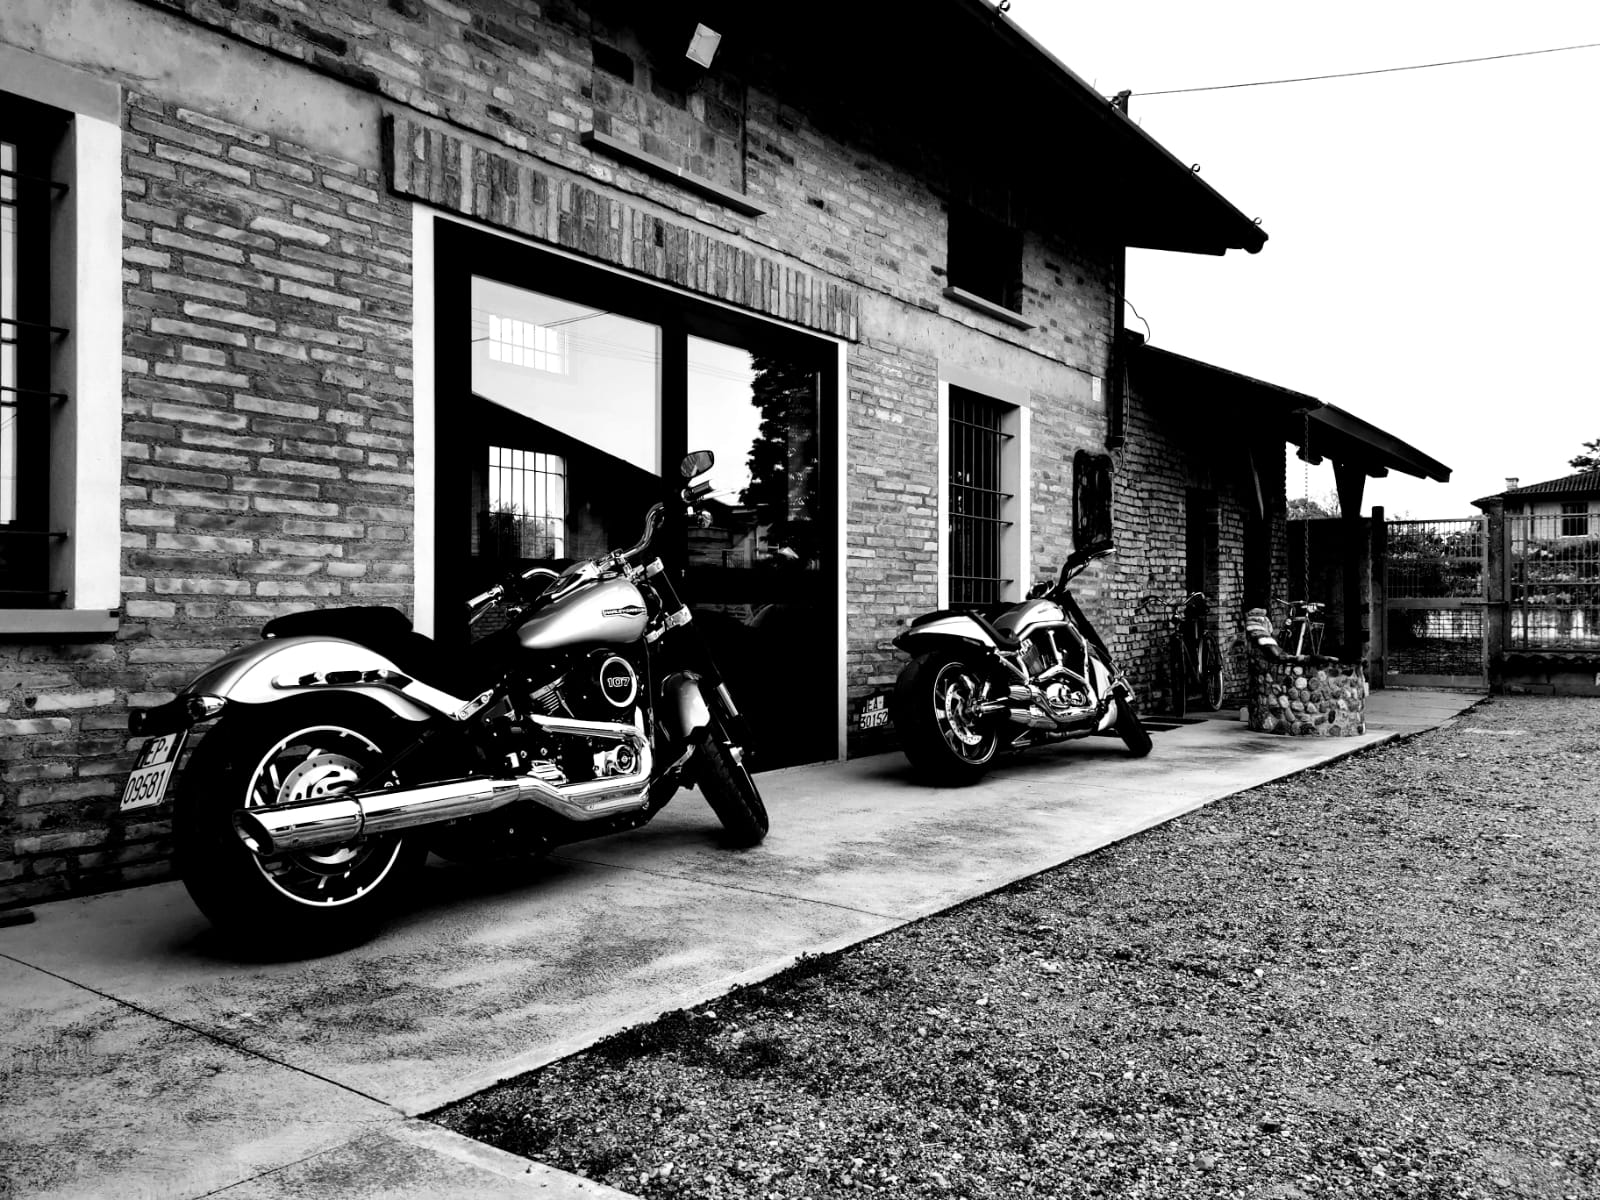 motor-cycles-garage-harley-havidson-brescia-mantova-cremona